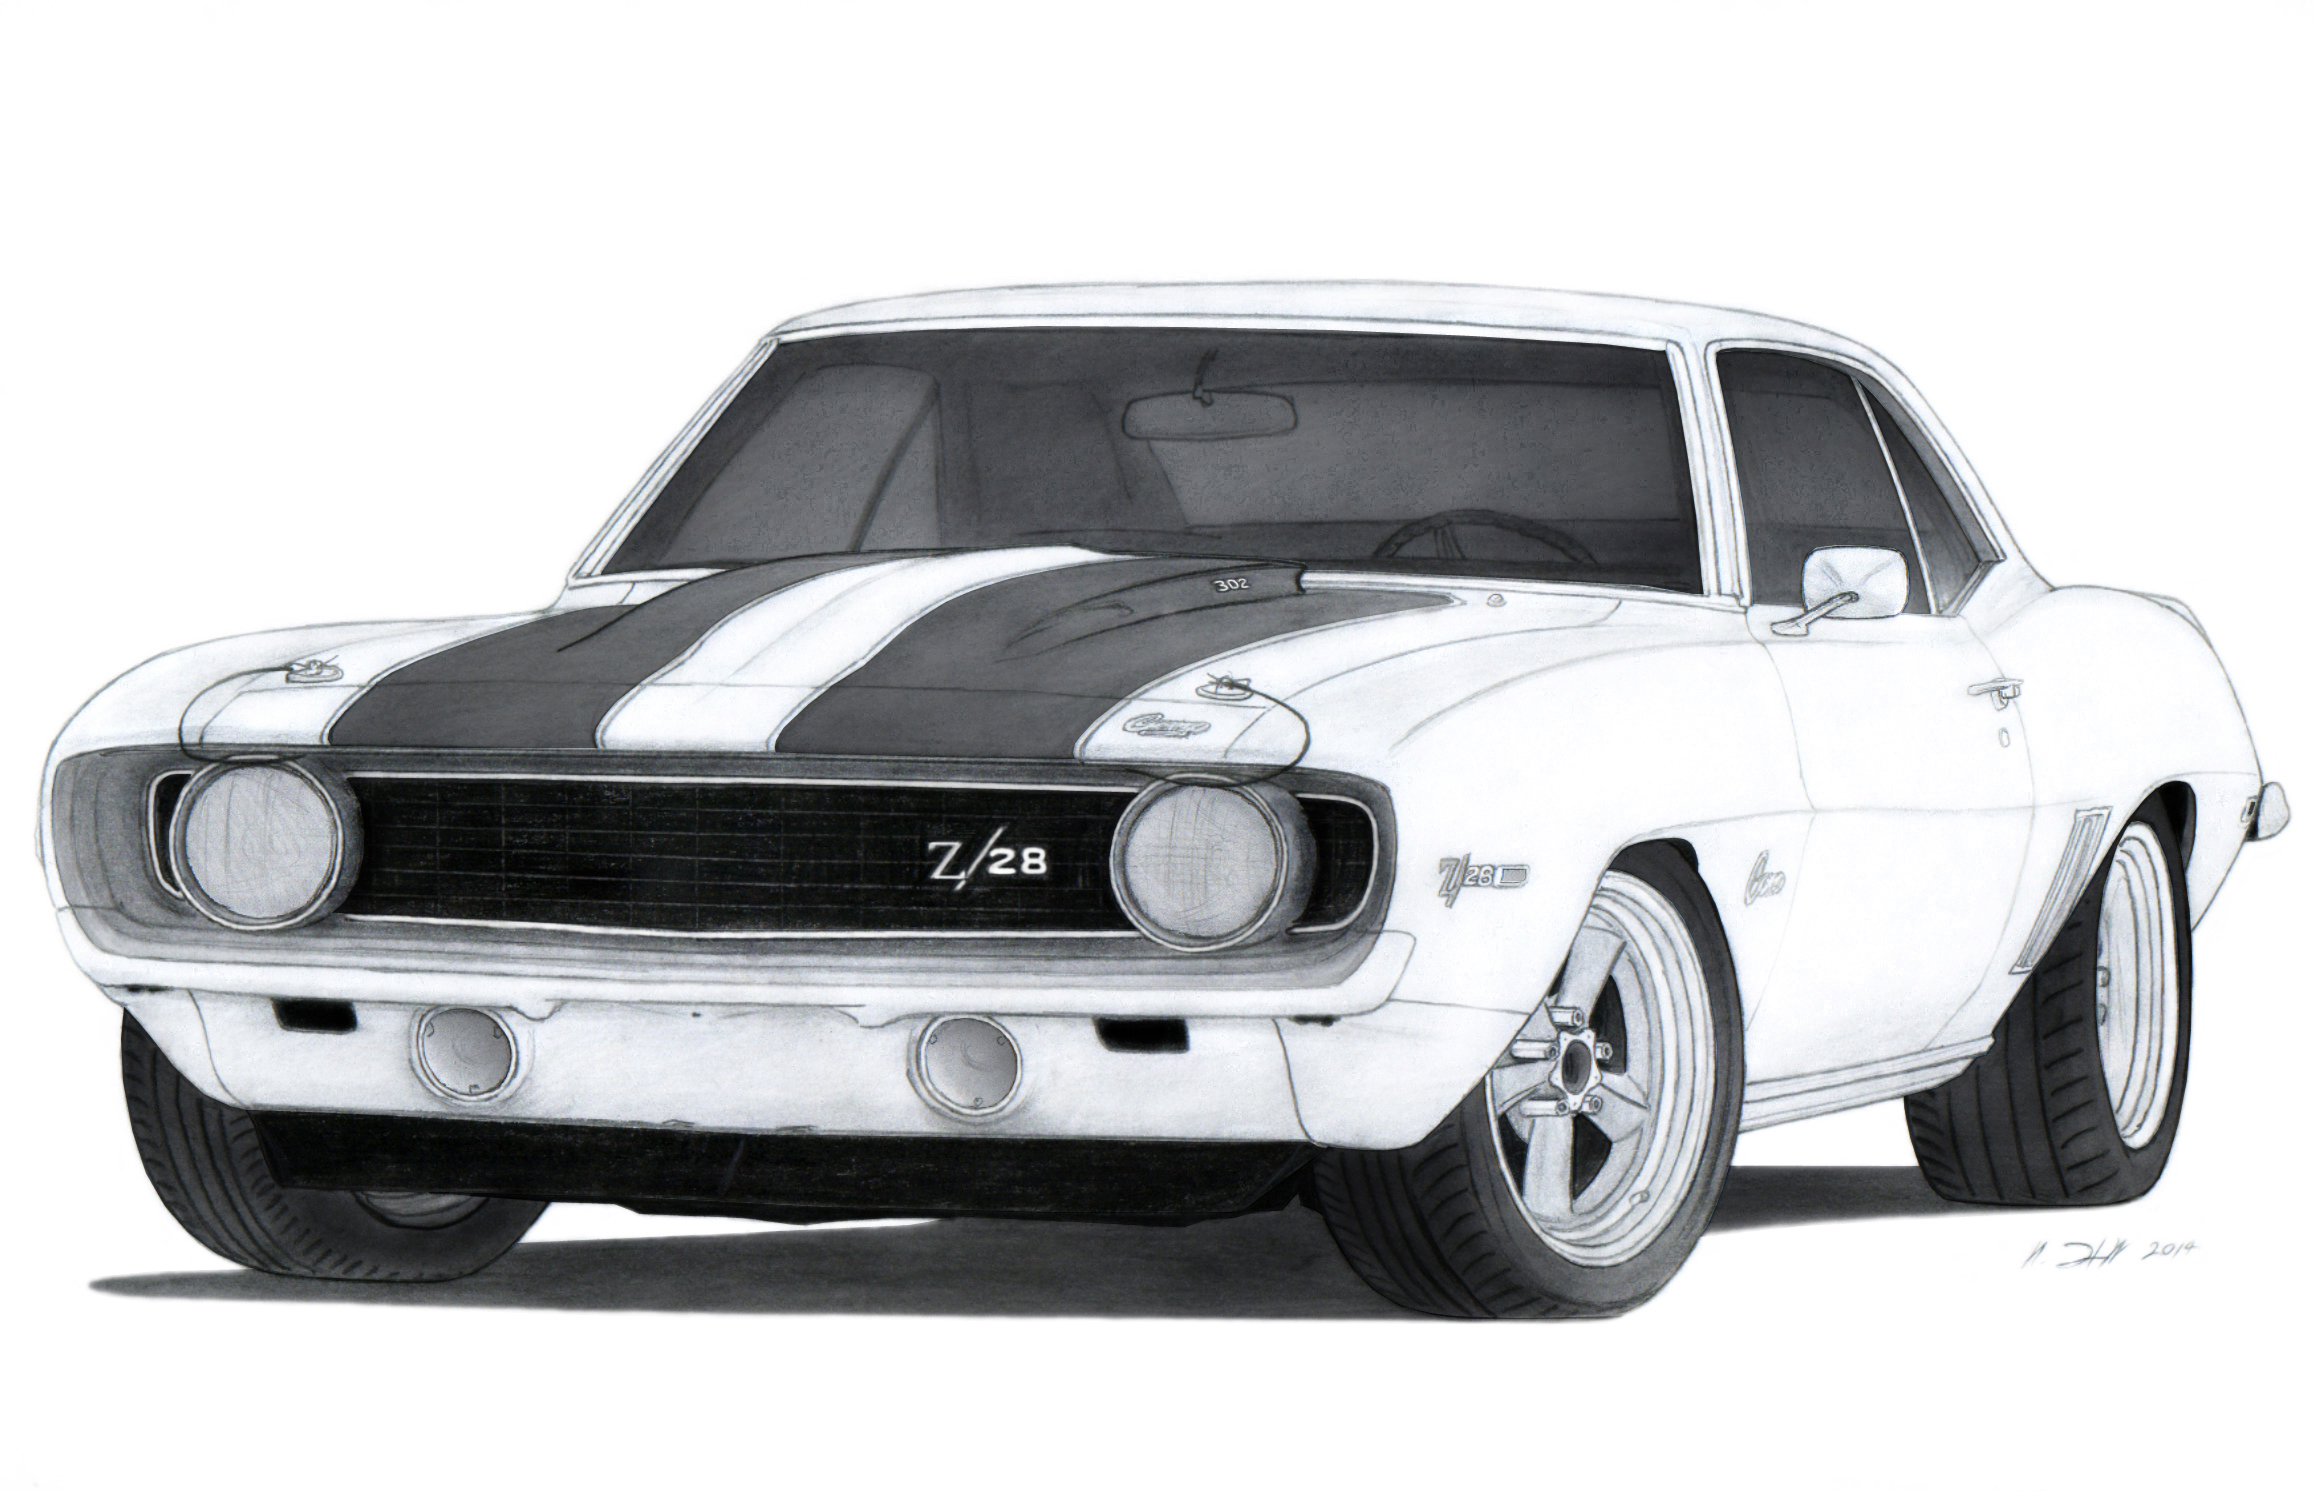 1969 Chevrolet Camaro Z 28 Drawing By Vertualissimo On